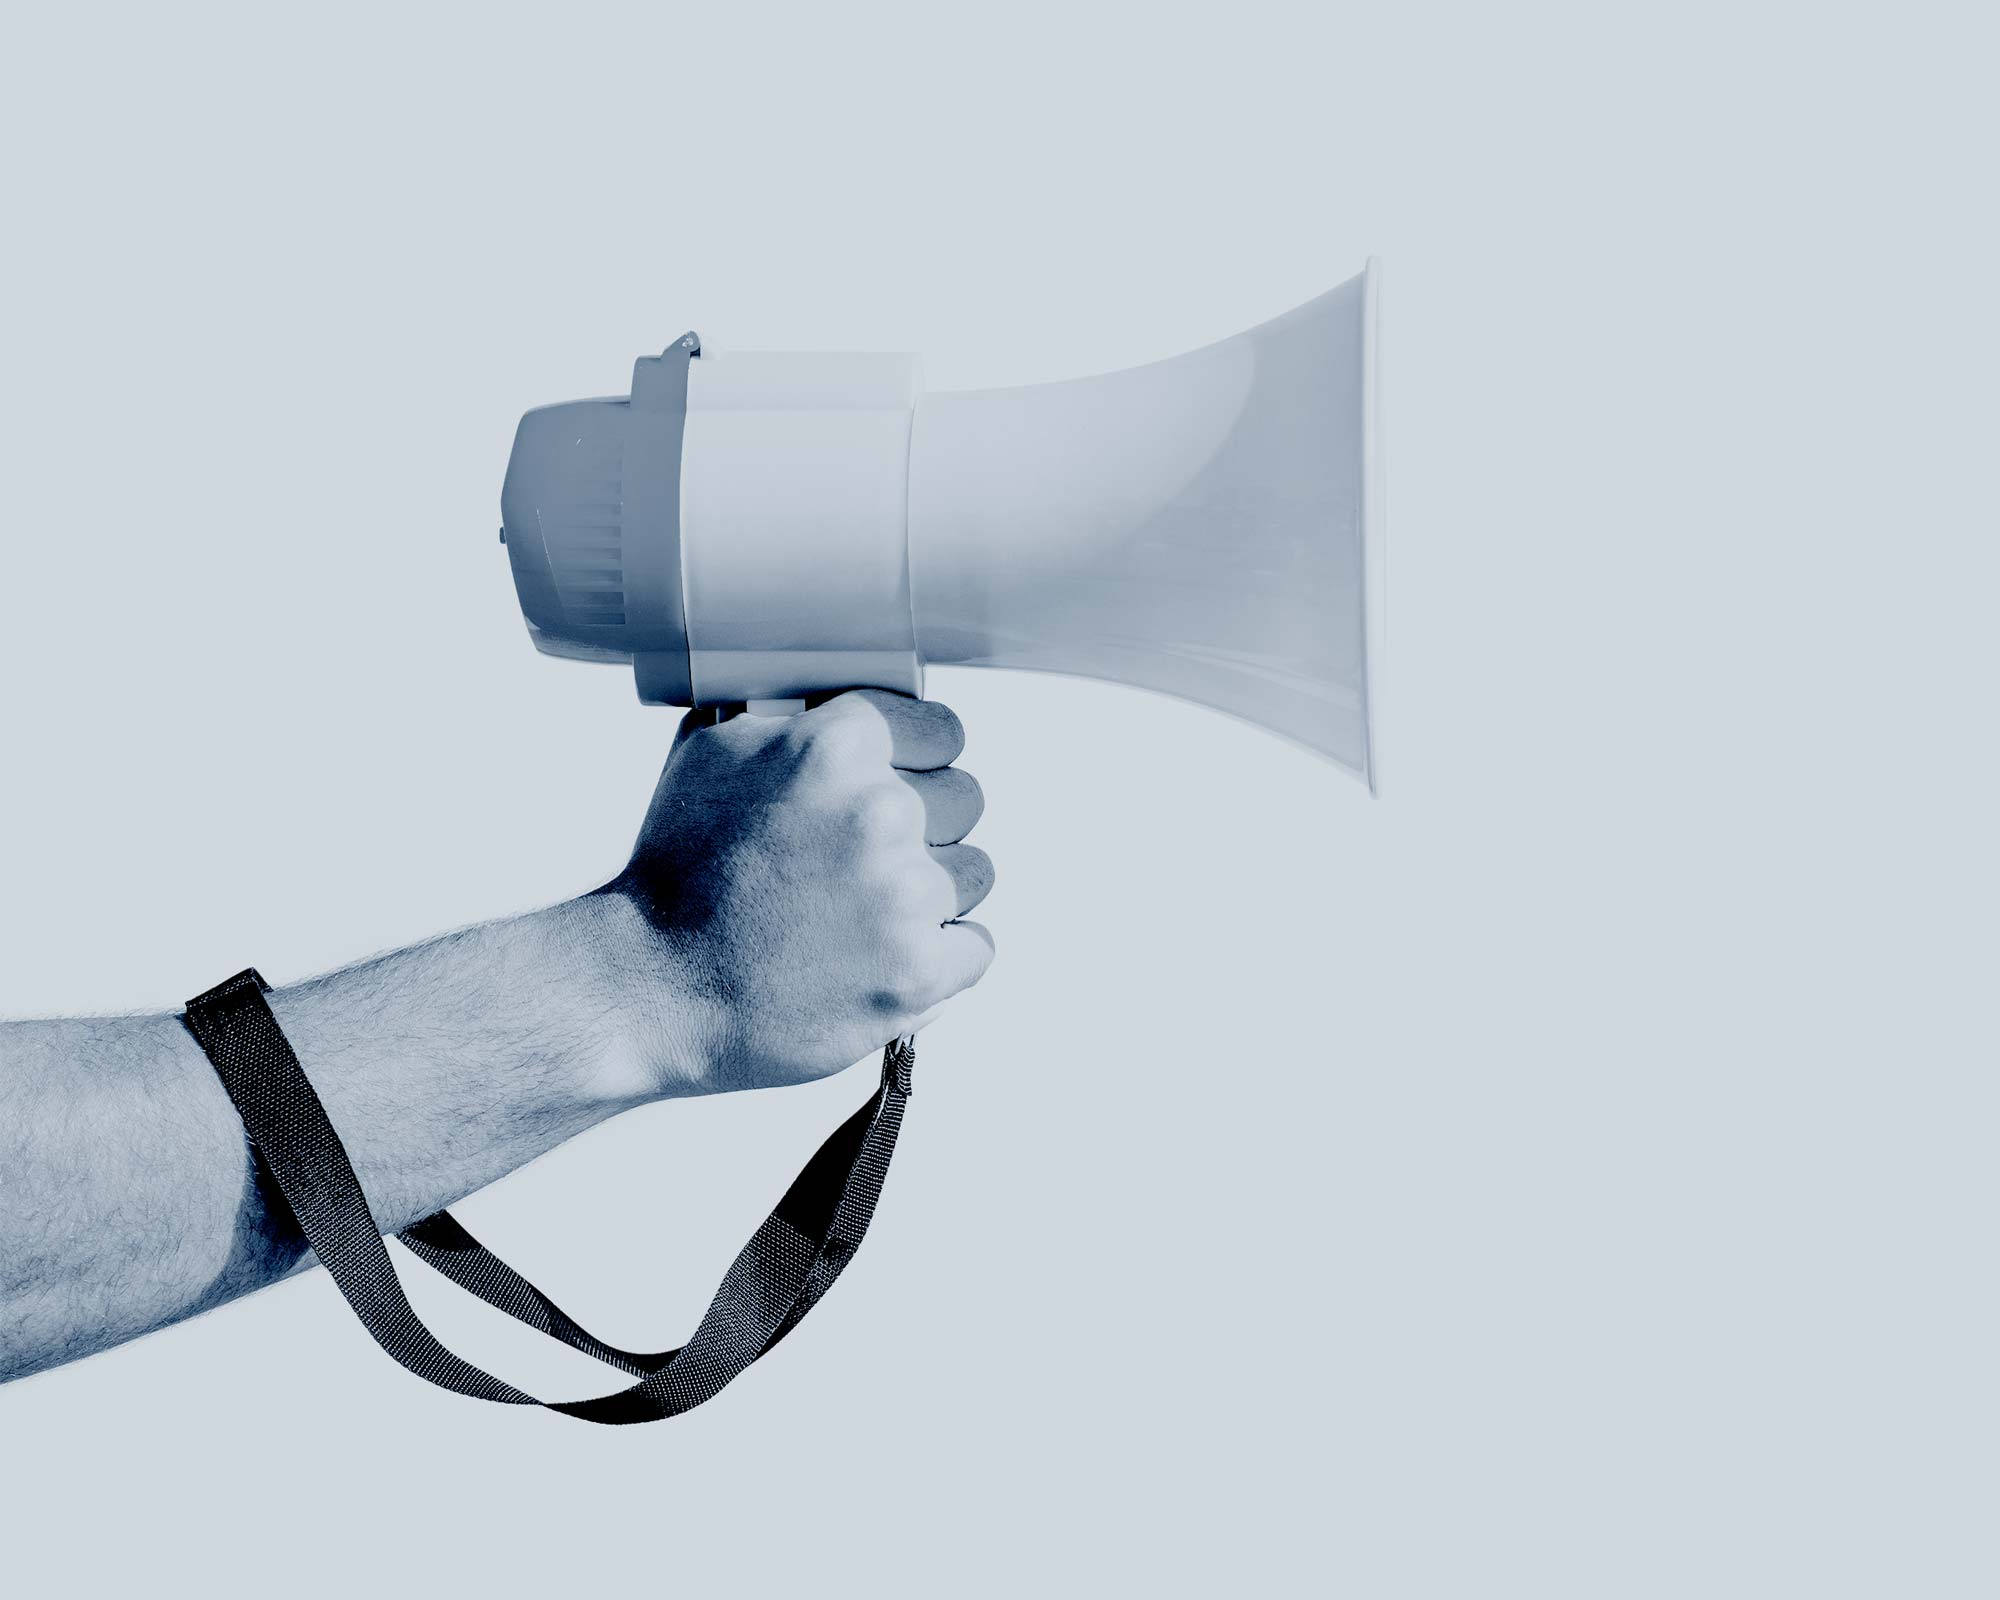 A hand holding a megaphone with the strap wrapped around the wrist.